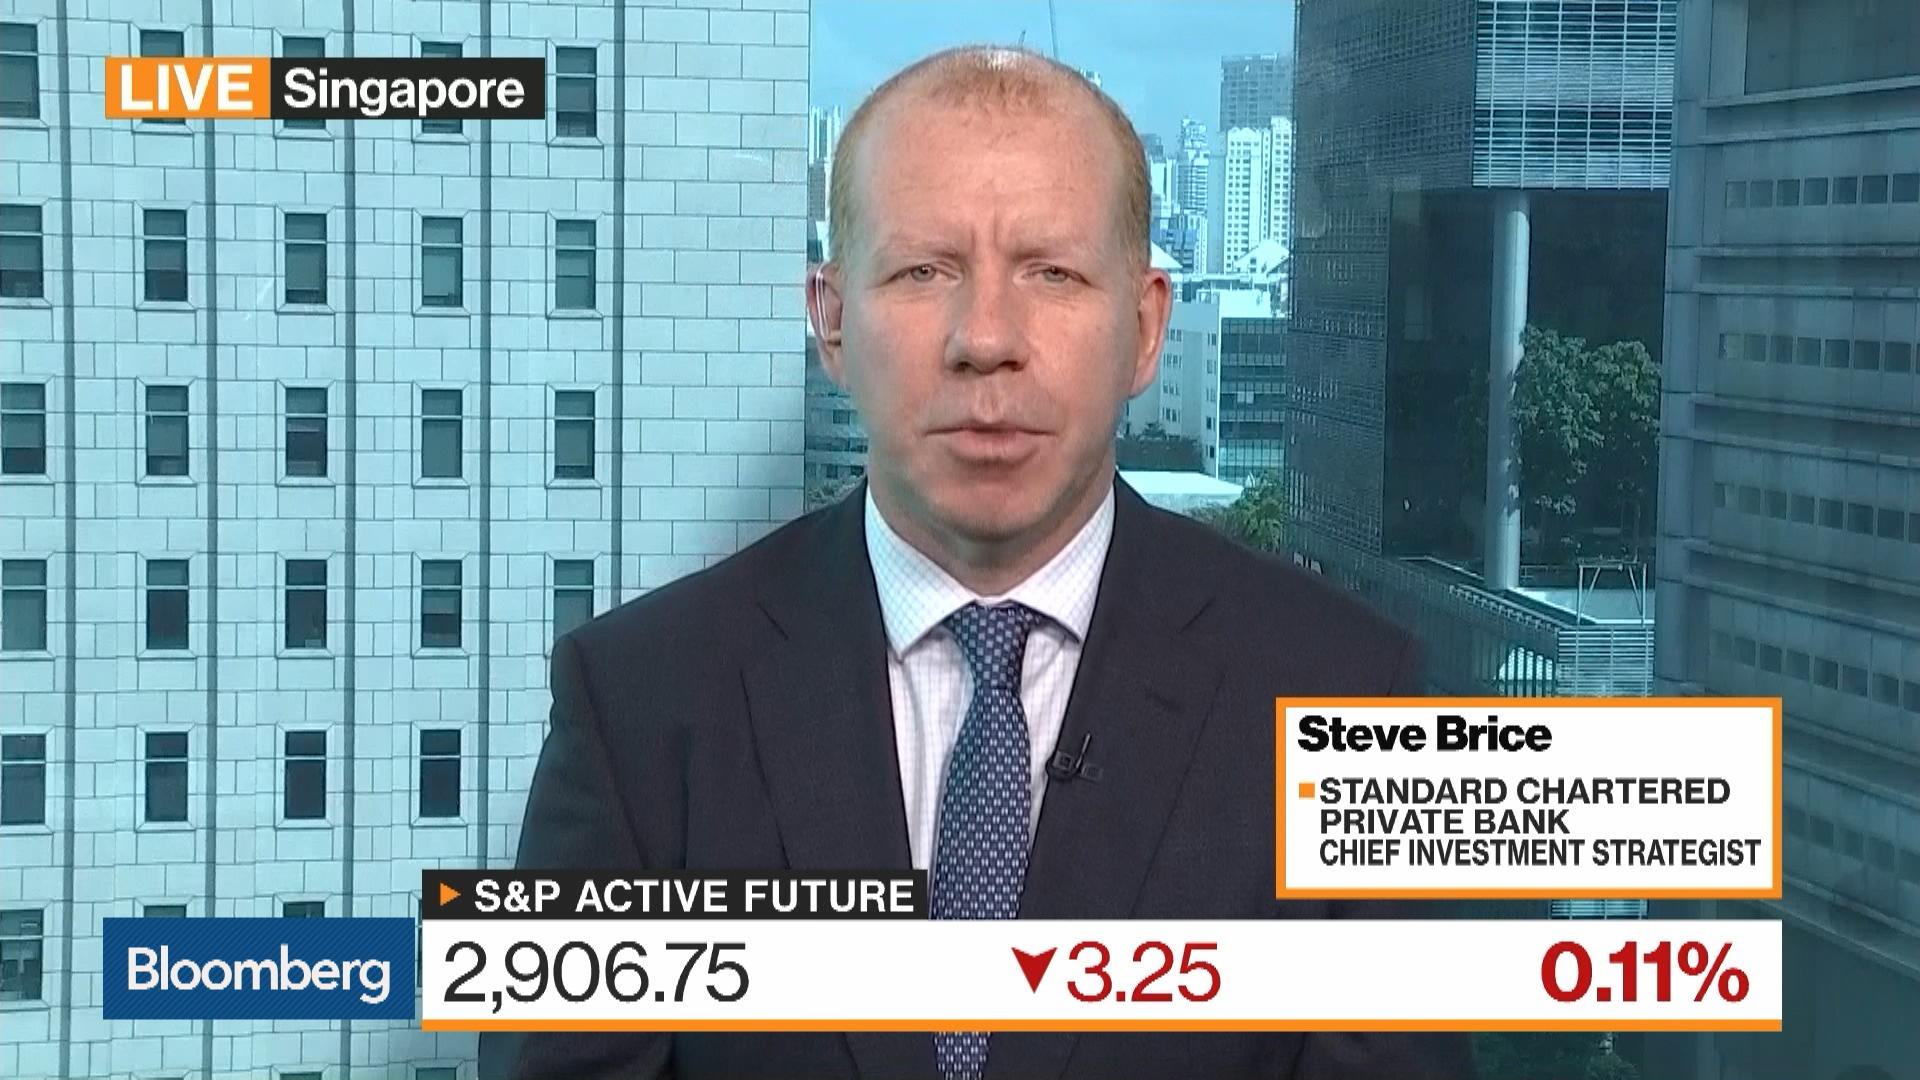 Stocks May Face Temporal Weakness, StanChart PB's Brice Says